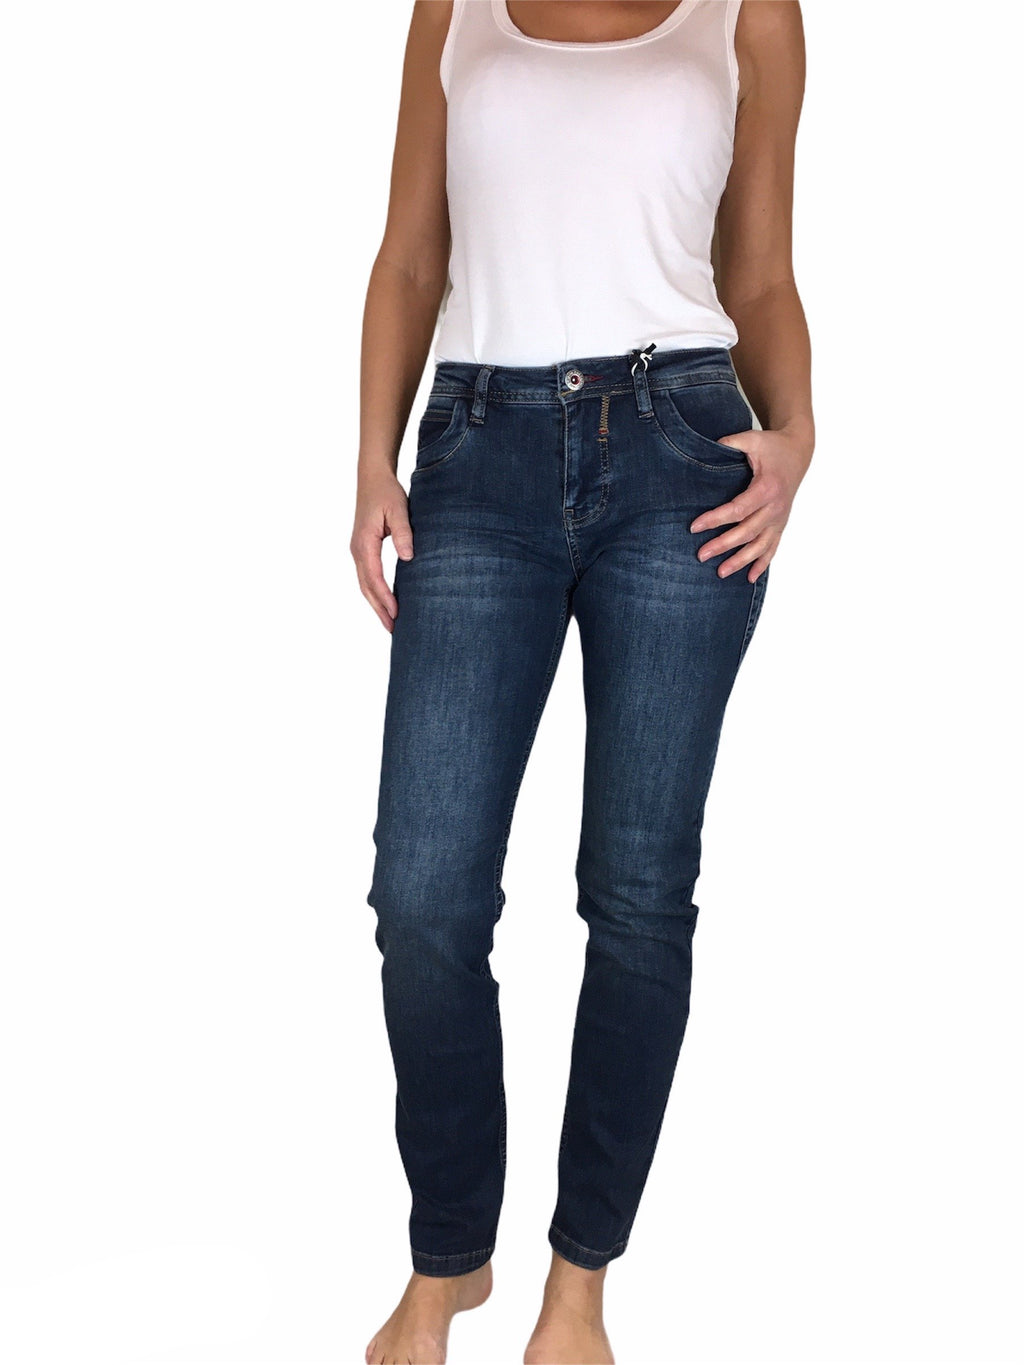 BluefireCo Jeans NANCY stone washed